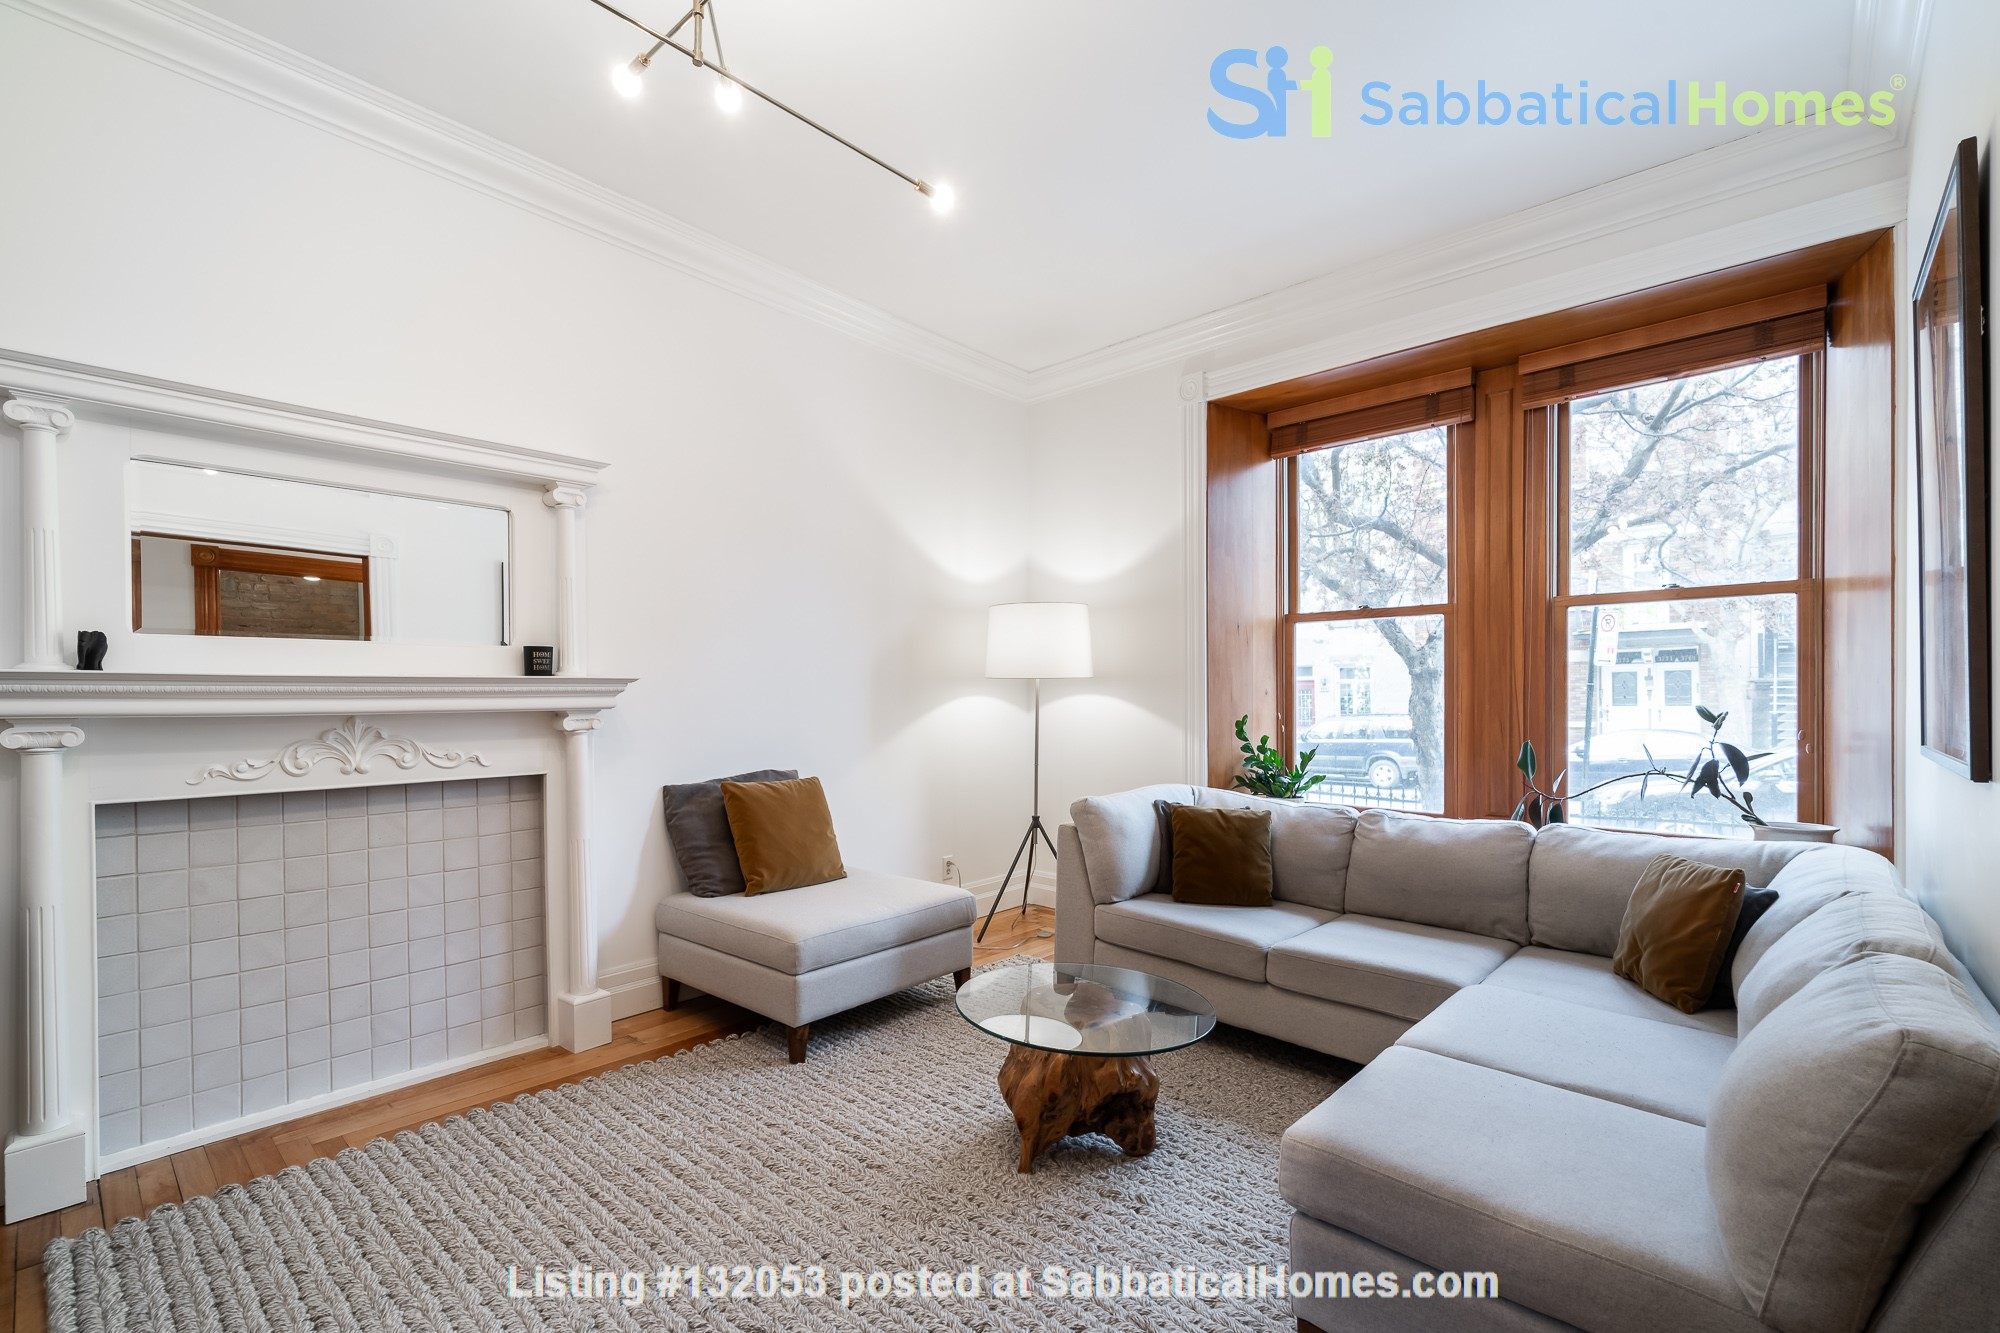 Stunning 3-Bedroom Apt on Most Beautiful Street in Montreal's Plateau Home Rental in Montreal 1